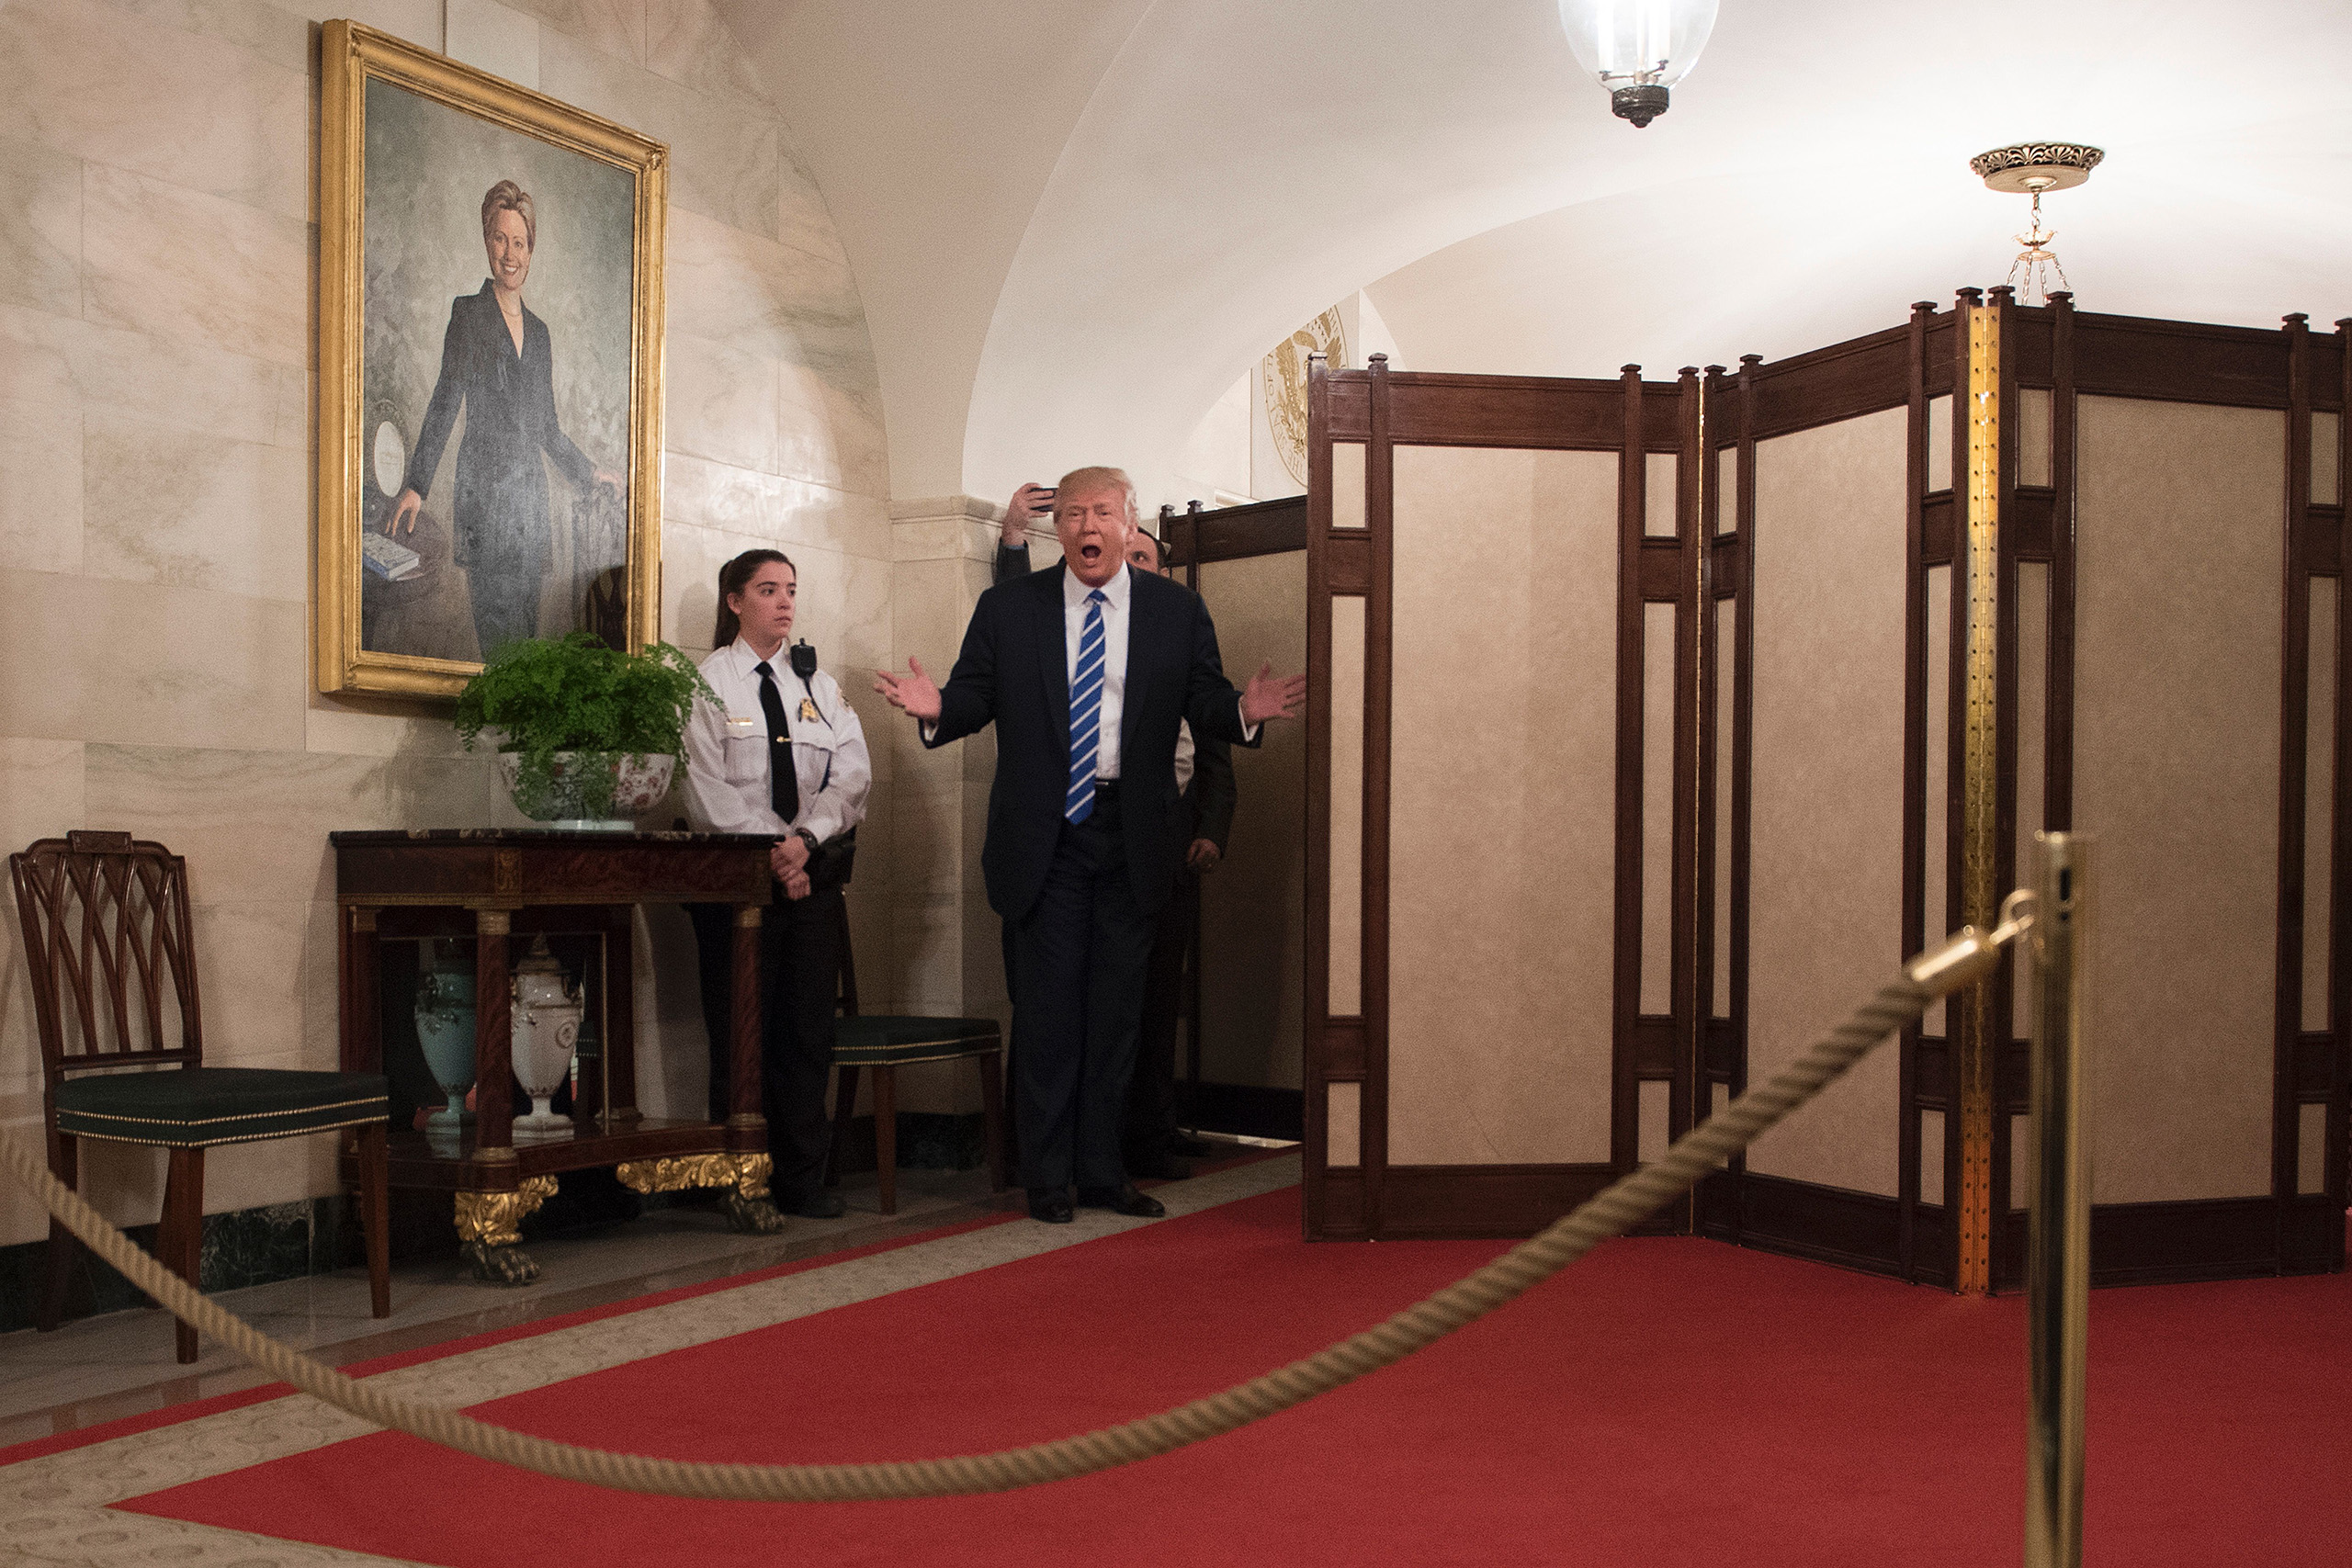 US President Donald Trump surprises visitors during the official reopening of public tours at the White House on March 7, 2017.